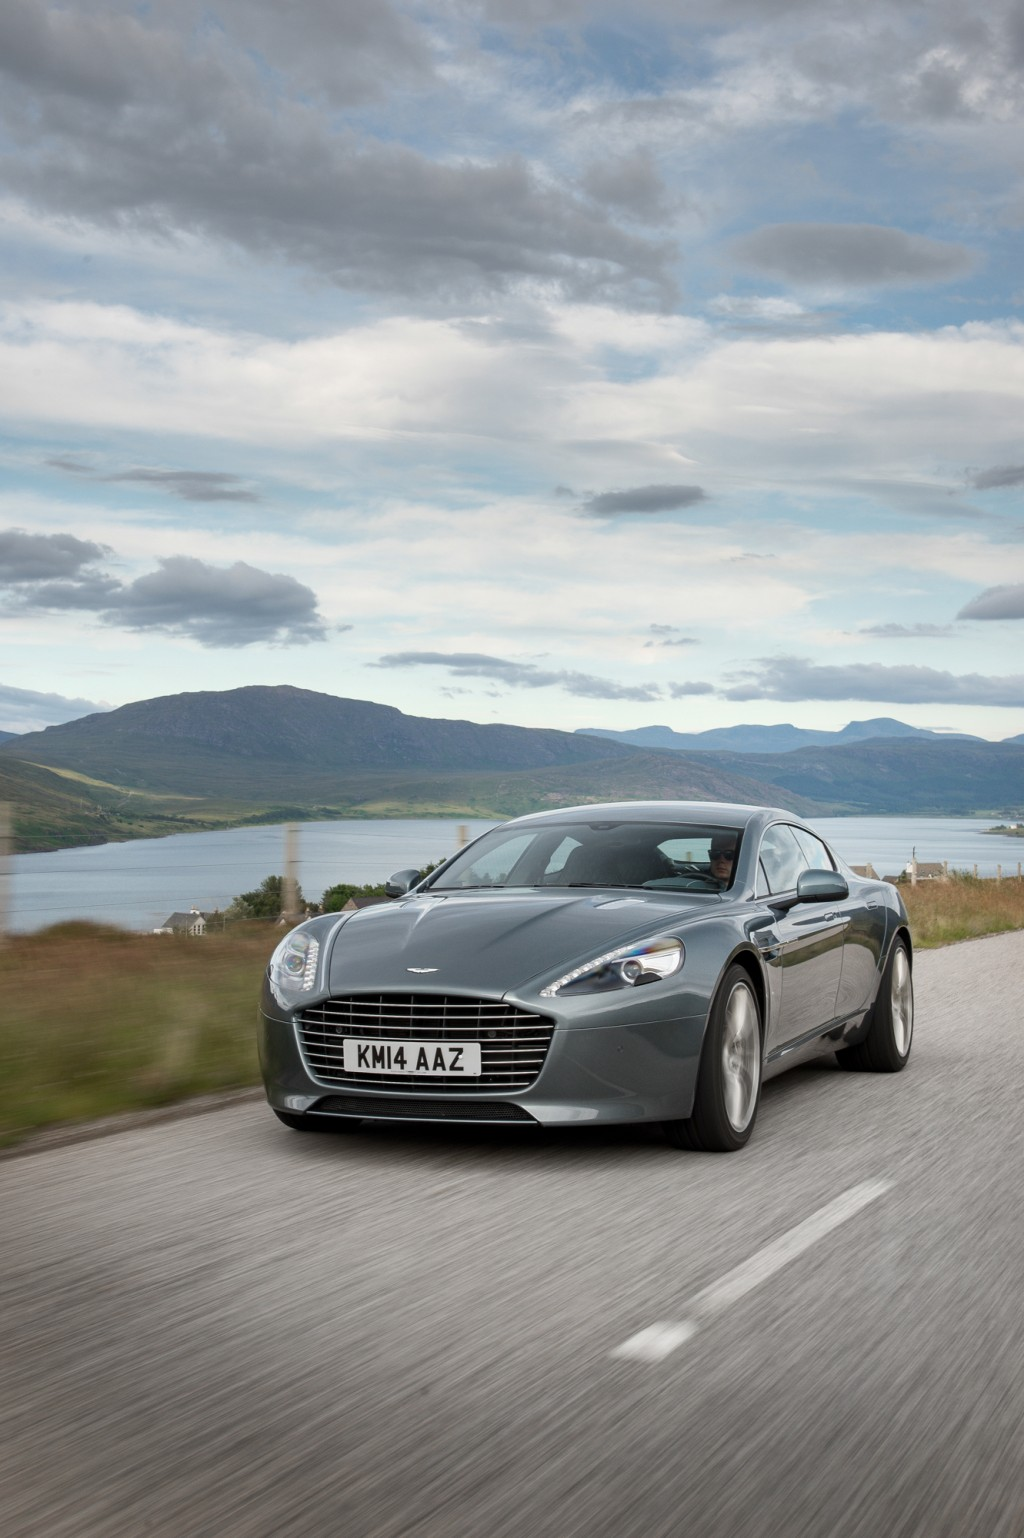 2015 aston martin rapide s vanquish meld old with new. Black Bedroom Furniture Sets. Home Design Ideas